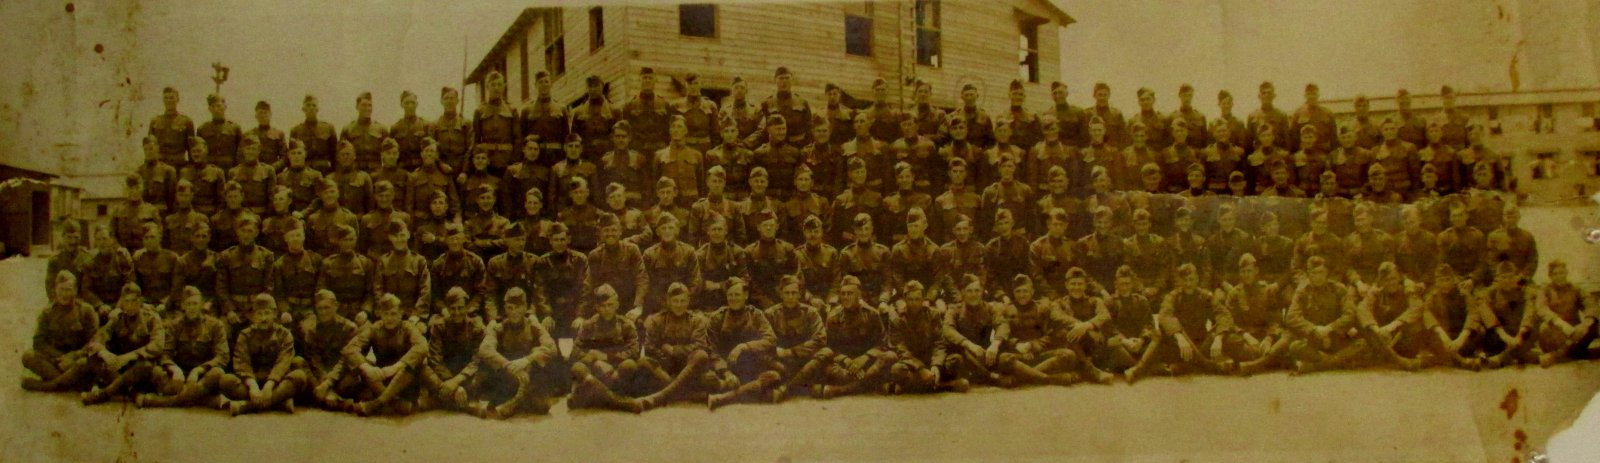 Hoard Johnson - Machine Gun Company 314th Infantry 1919 just back from France